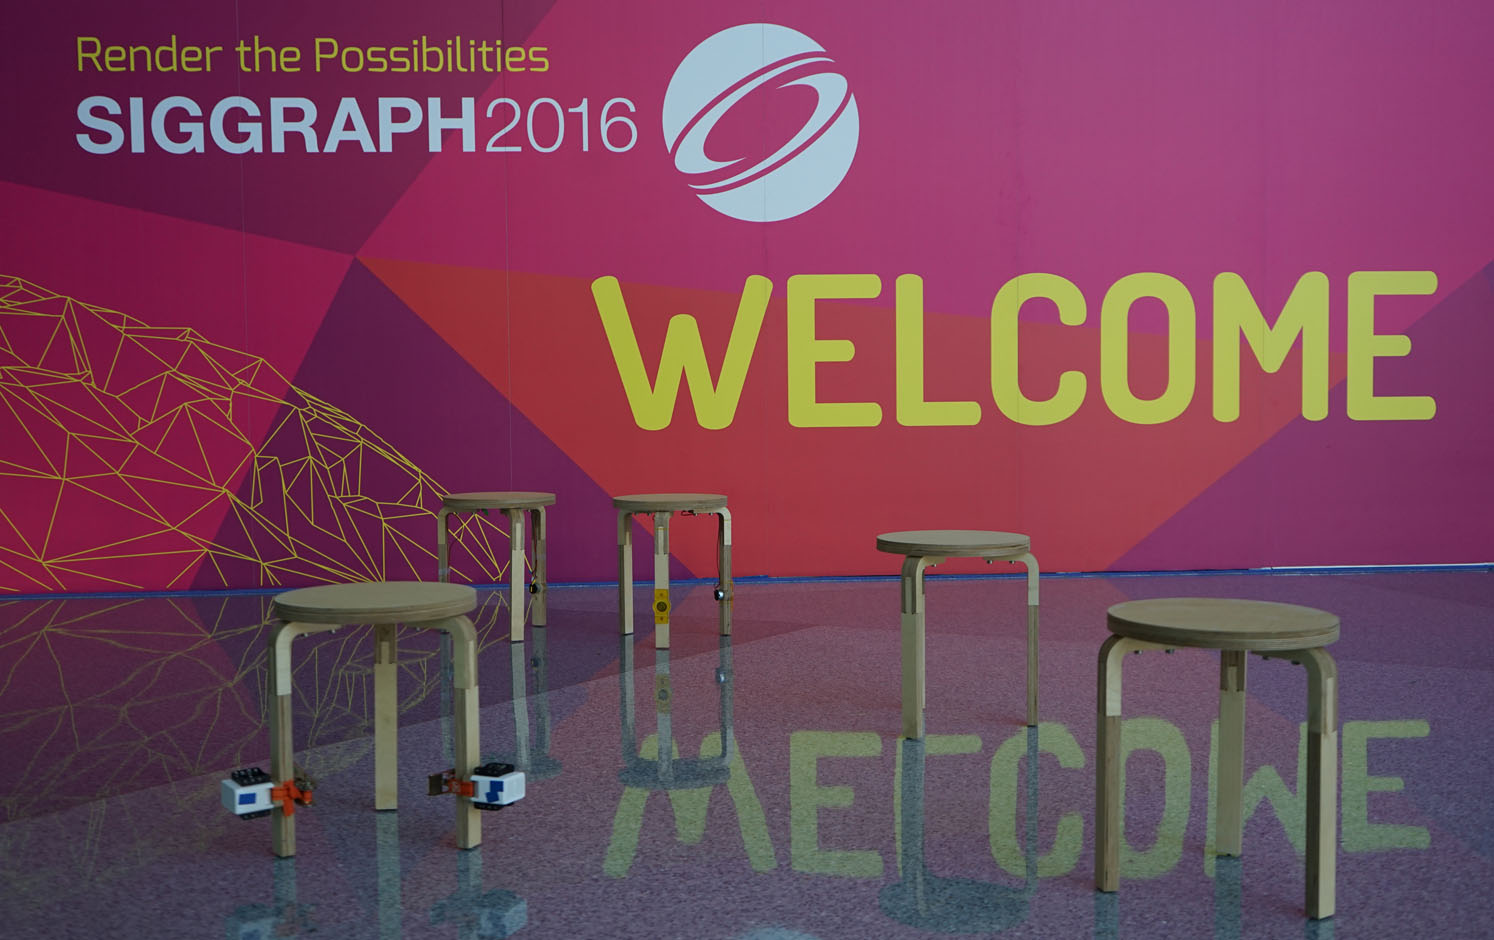 RatChair wins Digital Content Expo Prize at SIGGRAPH 2016